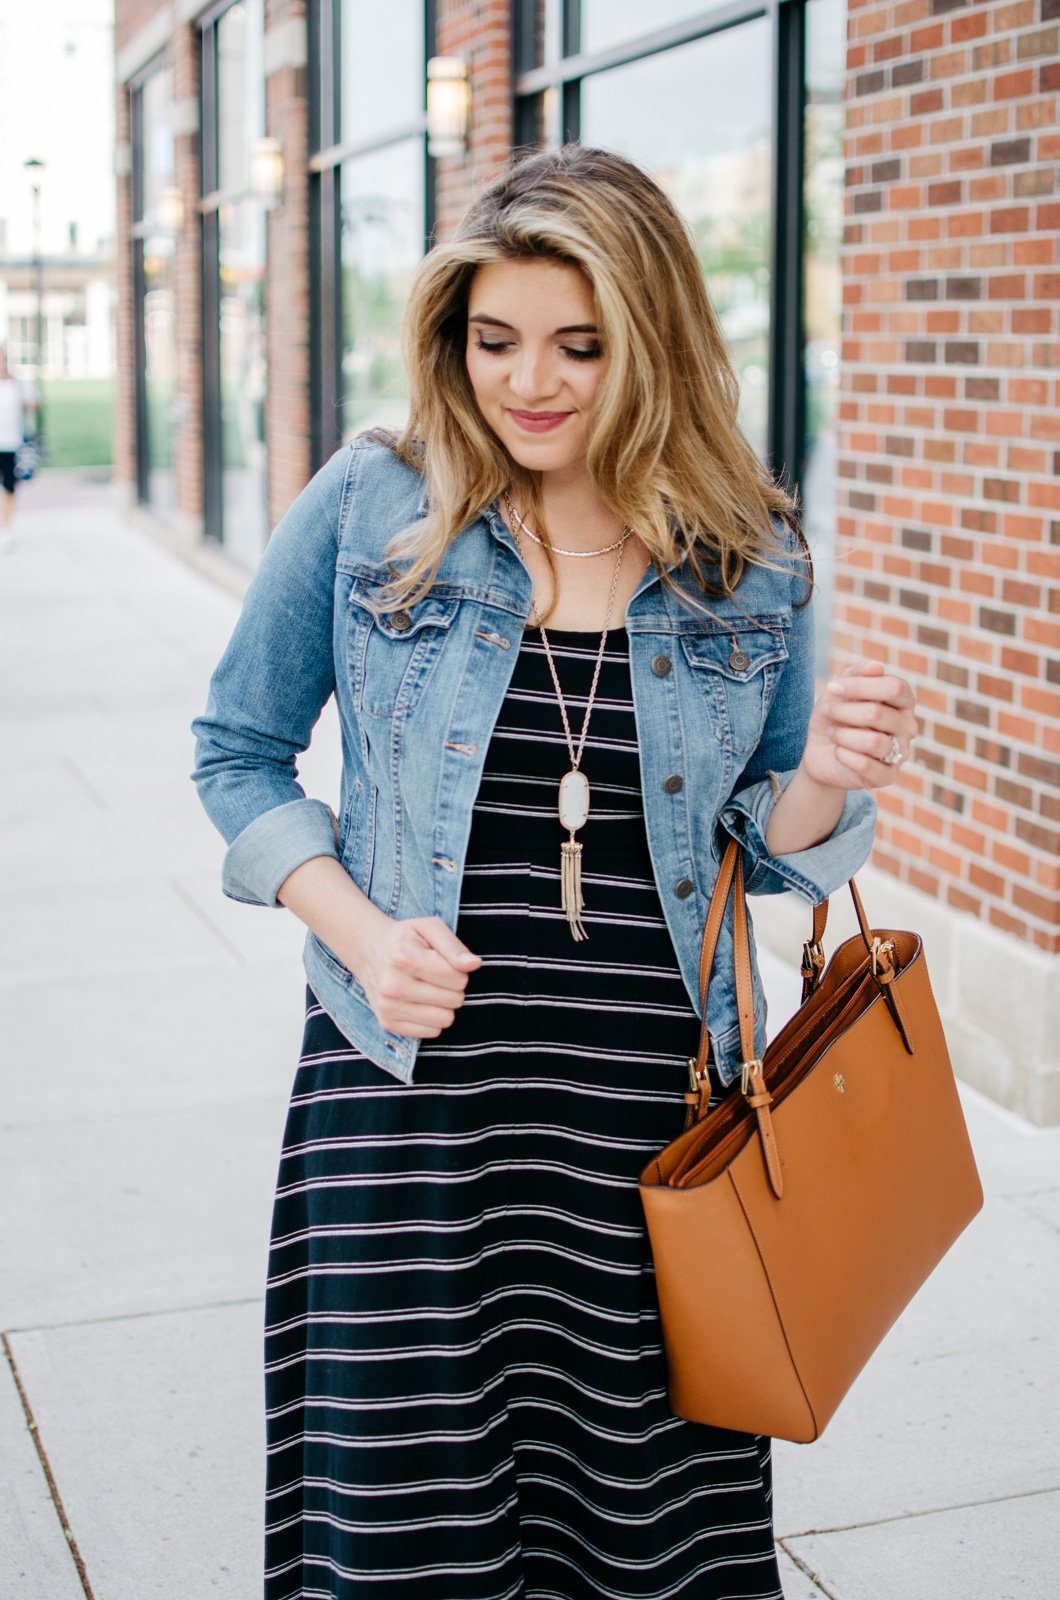 casual spring outfits - striped midi dress + denim jacket outfit | For more Spring outfit ideas, head to bylaurenm.com!